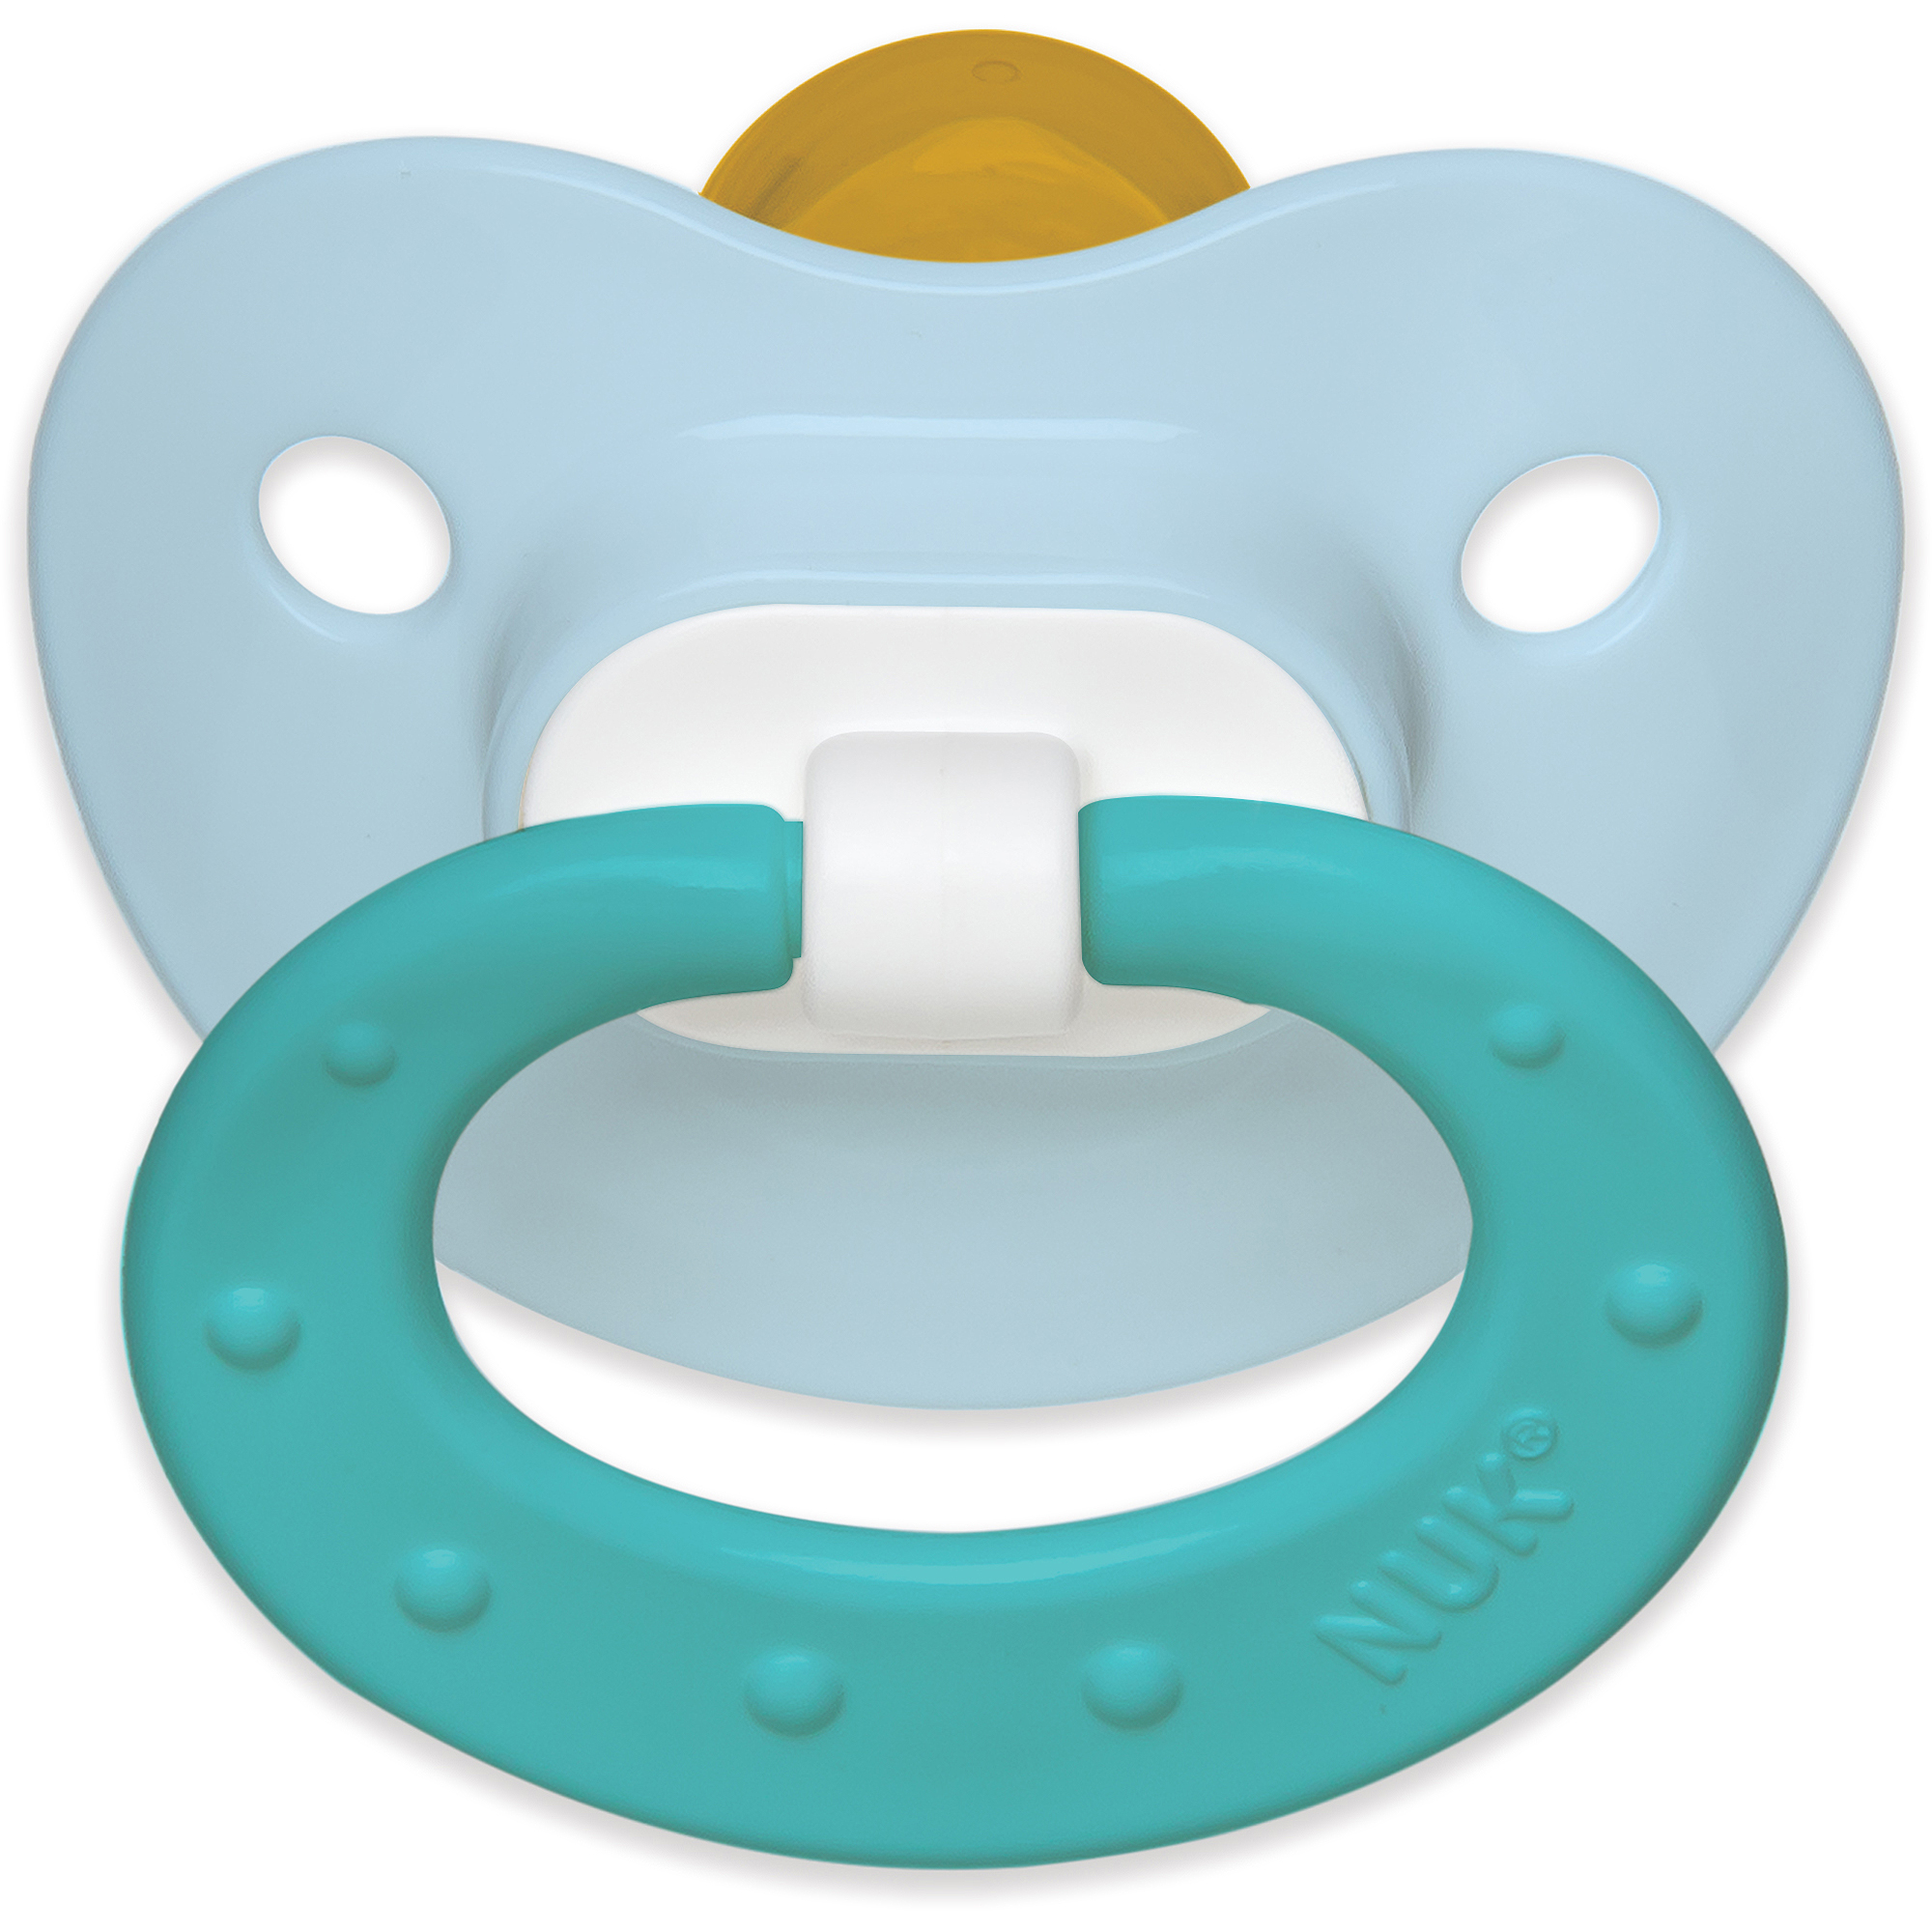 NUK Juicy Latex Orthodontic Pacifiers, 2ct, 0-6 months, BPA-Free (Colors May Vary)